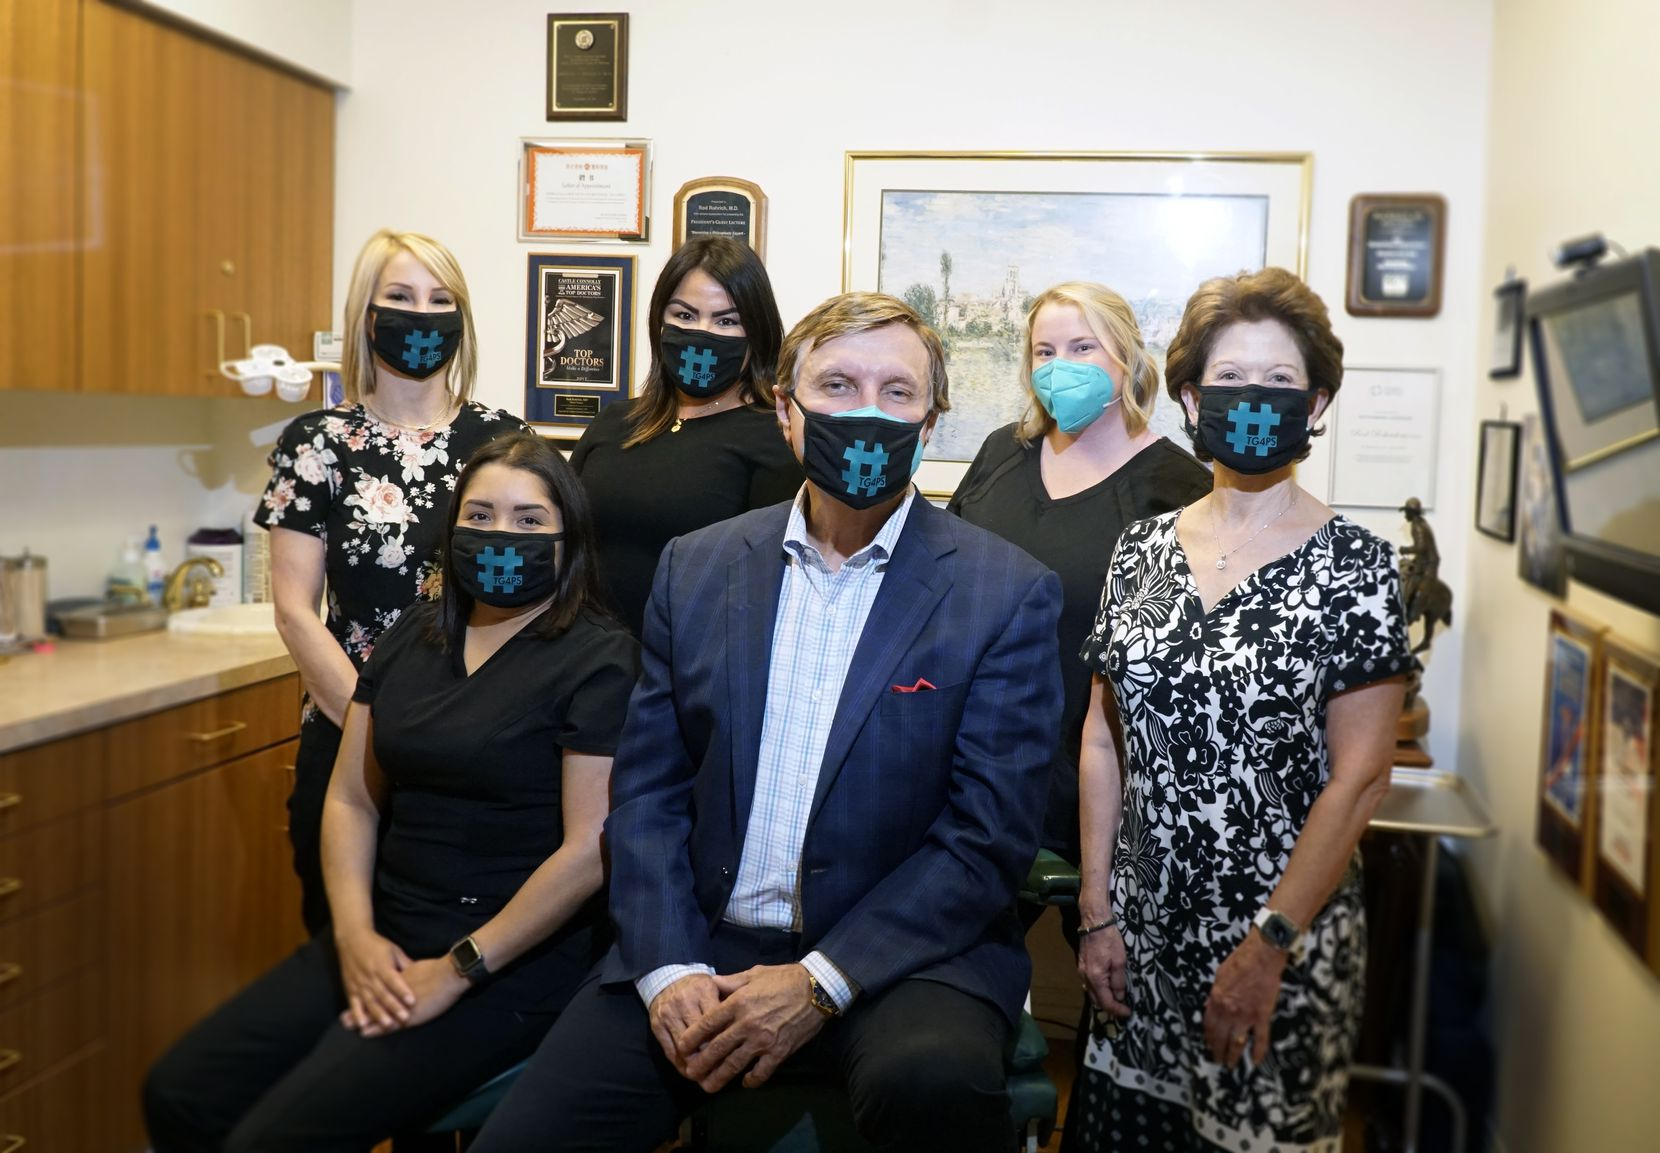 Dr. Rod Rohrich, former president of the American Society of Plastic Surgeons, with his staff at his office in Dallas on Monday.